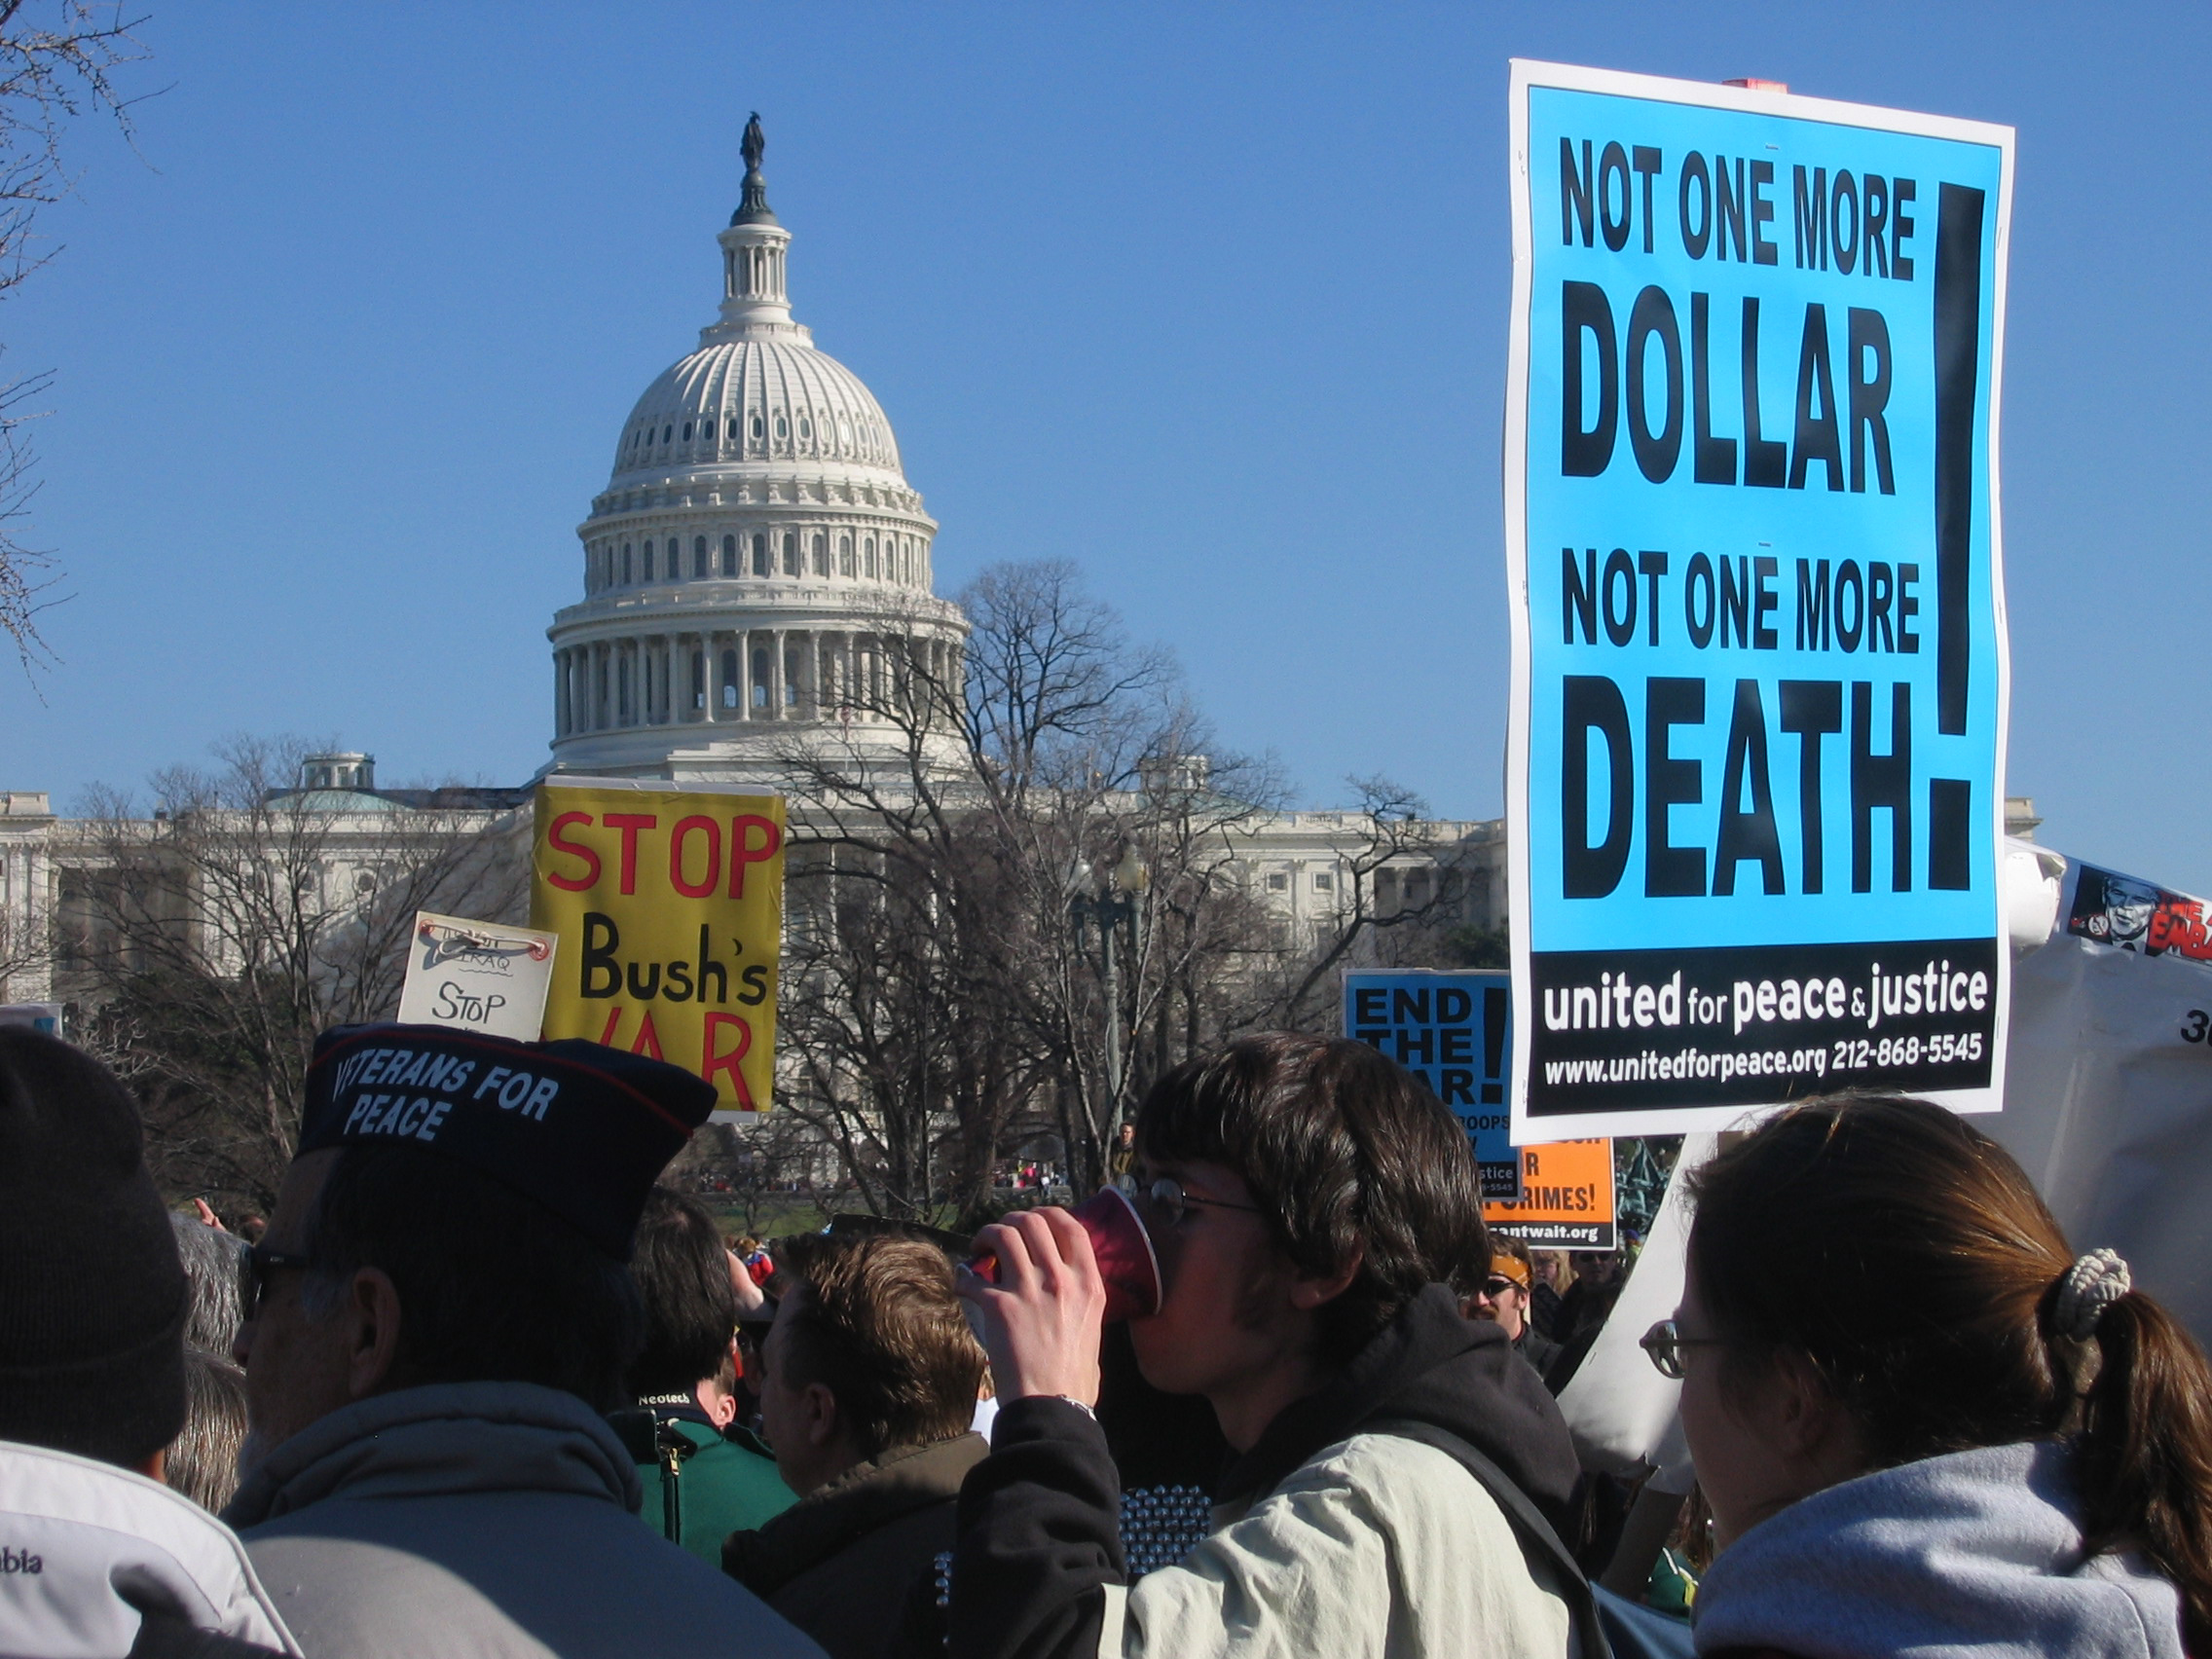 http://upload.wikimedia.org/wikipedia/commons/b/b2/Iraq_war_protest_jan27c.jpg